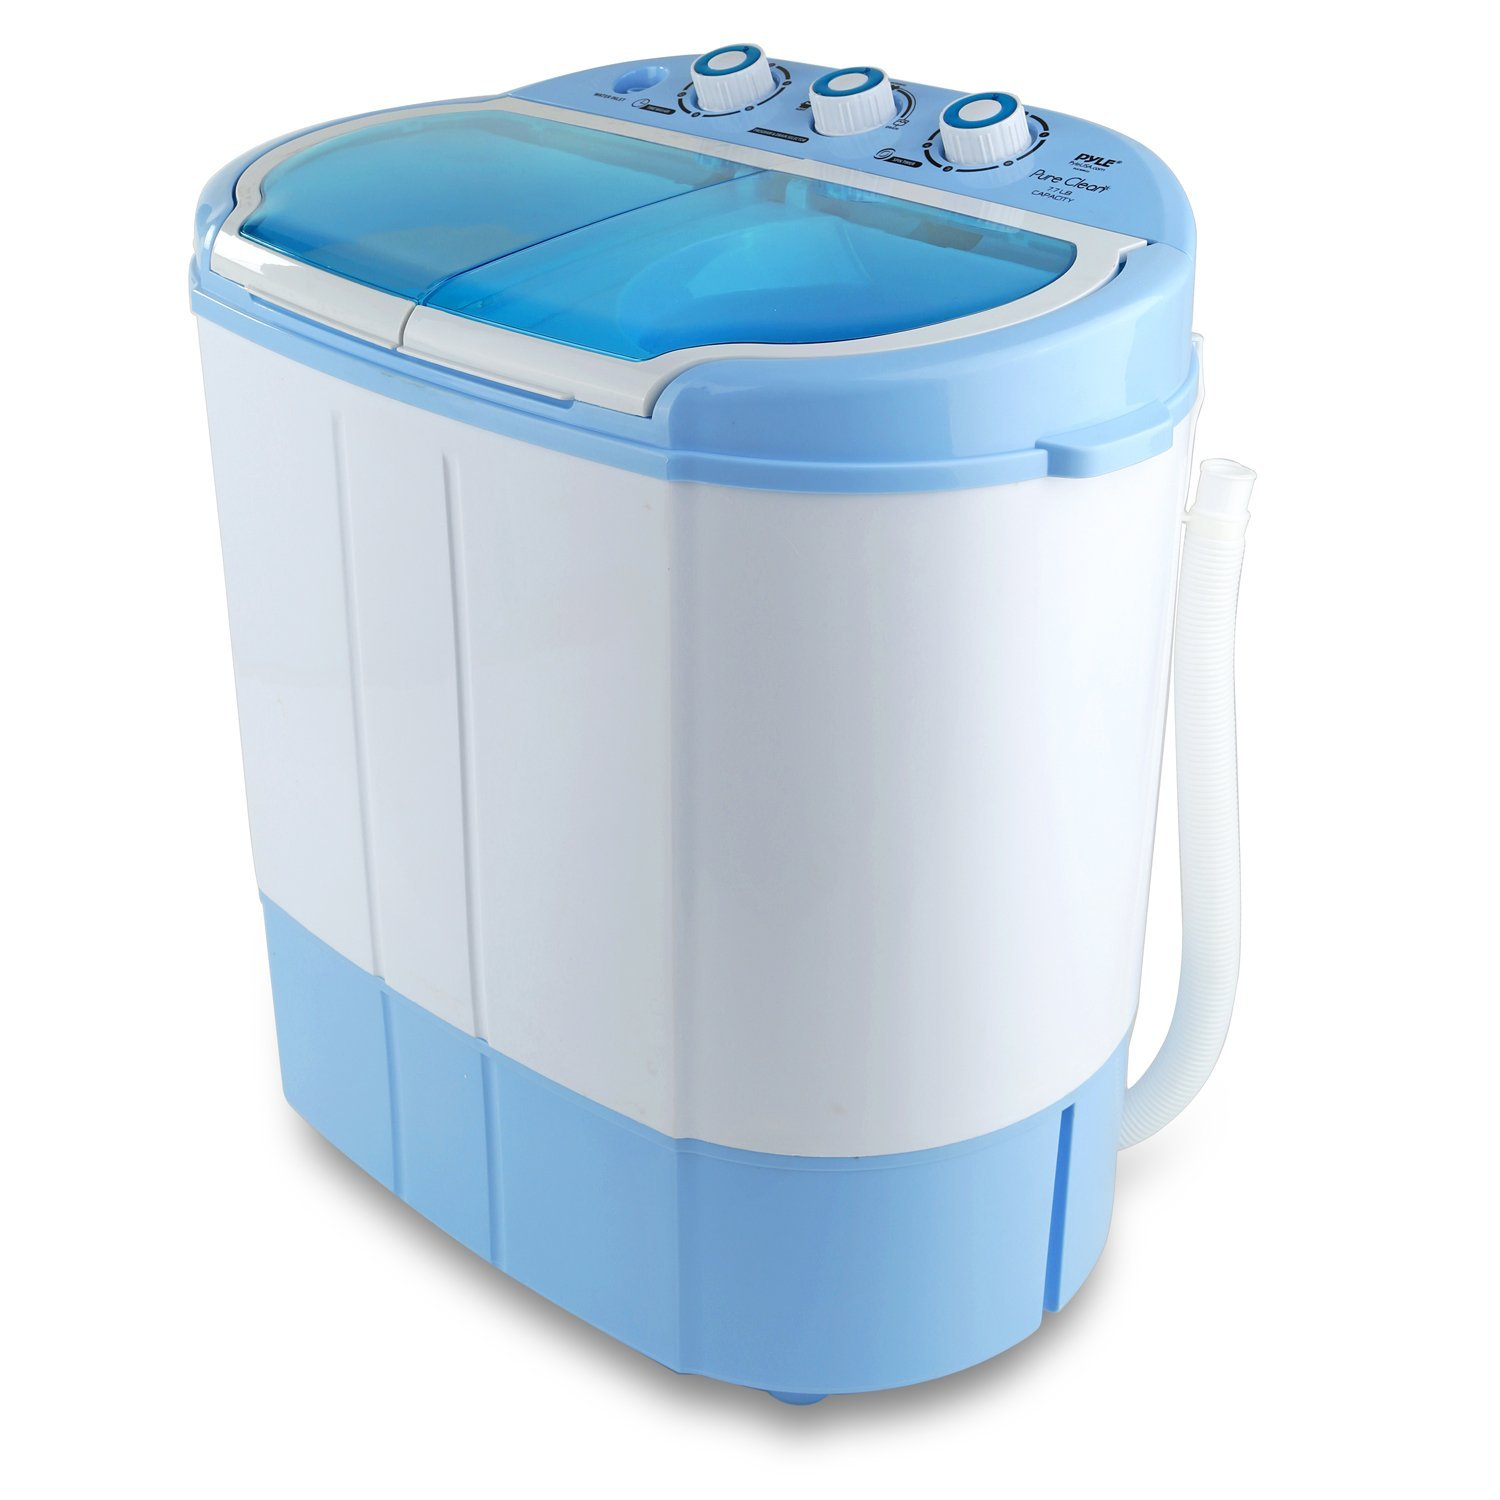 Upgraded Version Pyle Portable Washer & Spin Dryer, Mini Washing Machine, Twin Tubs, Spin Cycle w/ Hose, 11lbs. Capacity, 110V - Ideal For Compact Laundry (Certified Refurbished) Sound Around